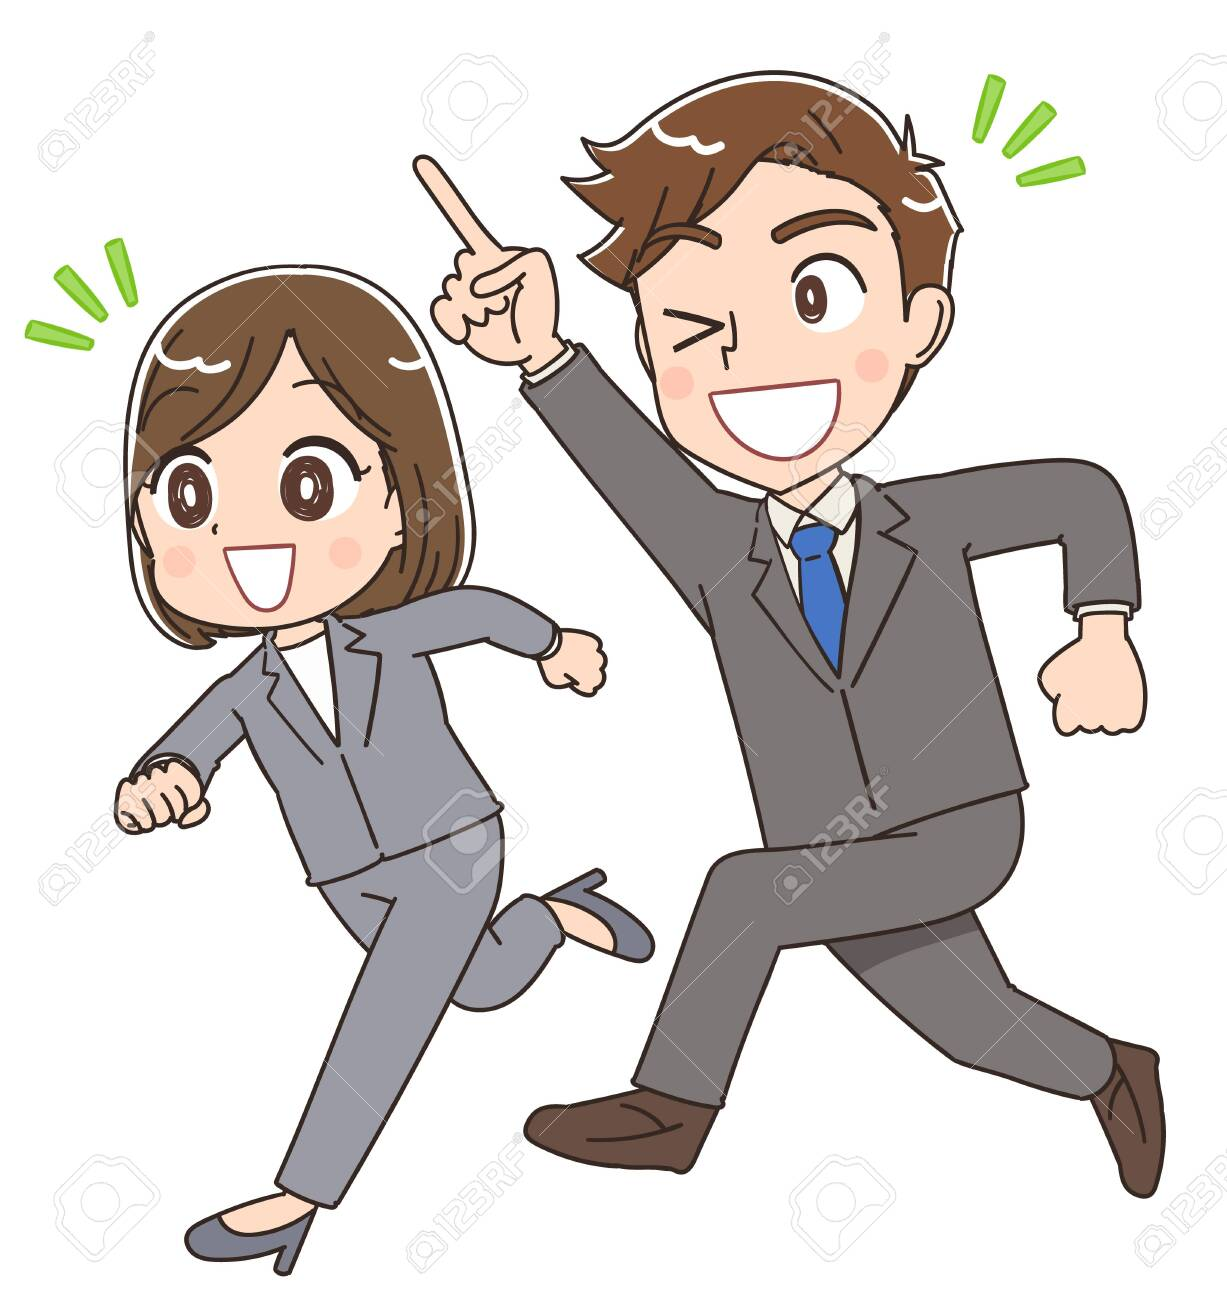 Young businessman and businesswoman.They are running forward. - 136710700